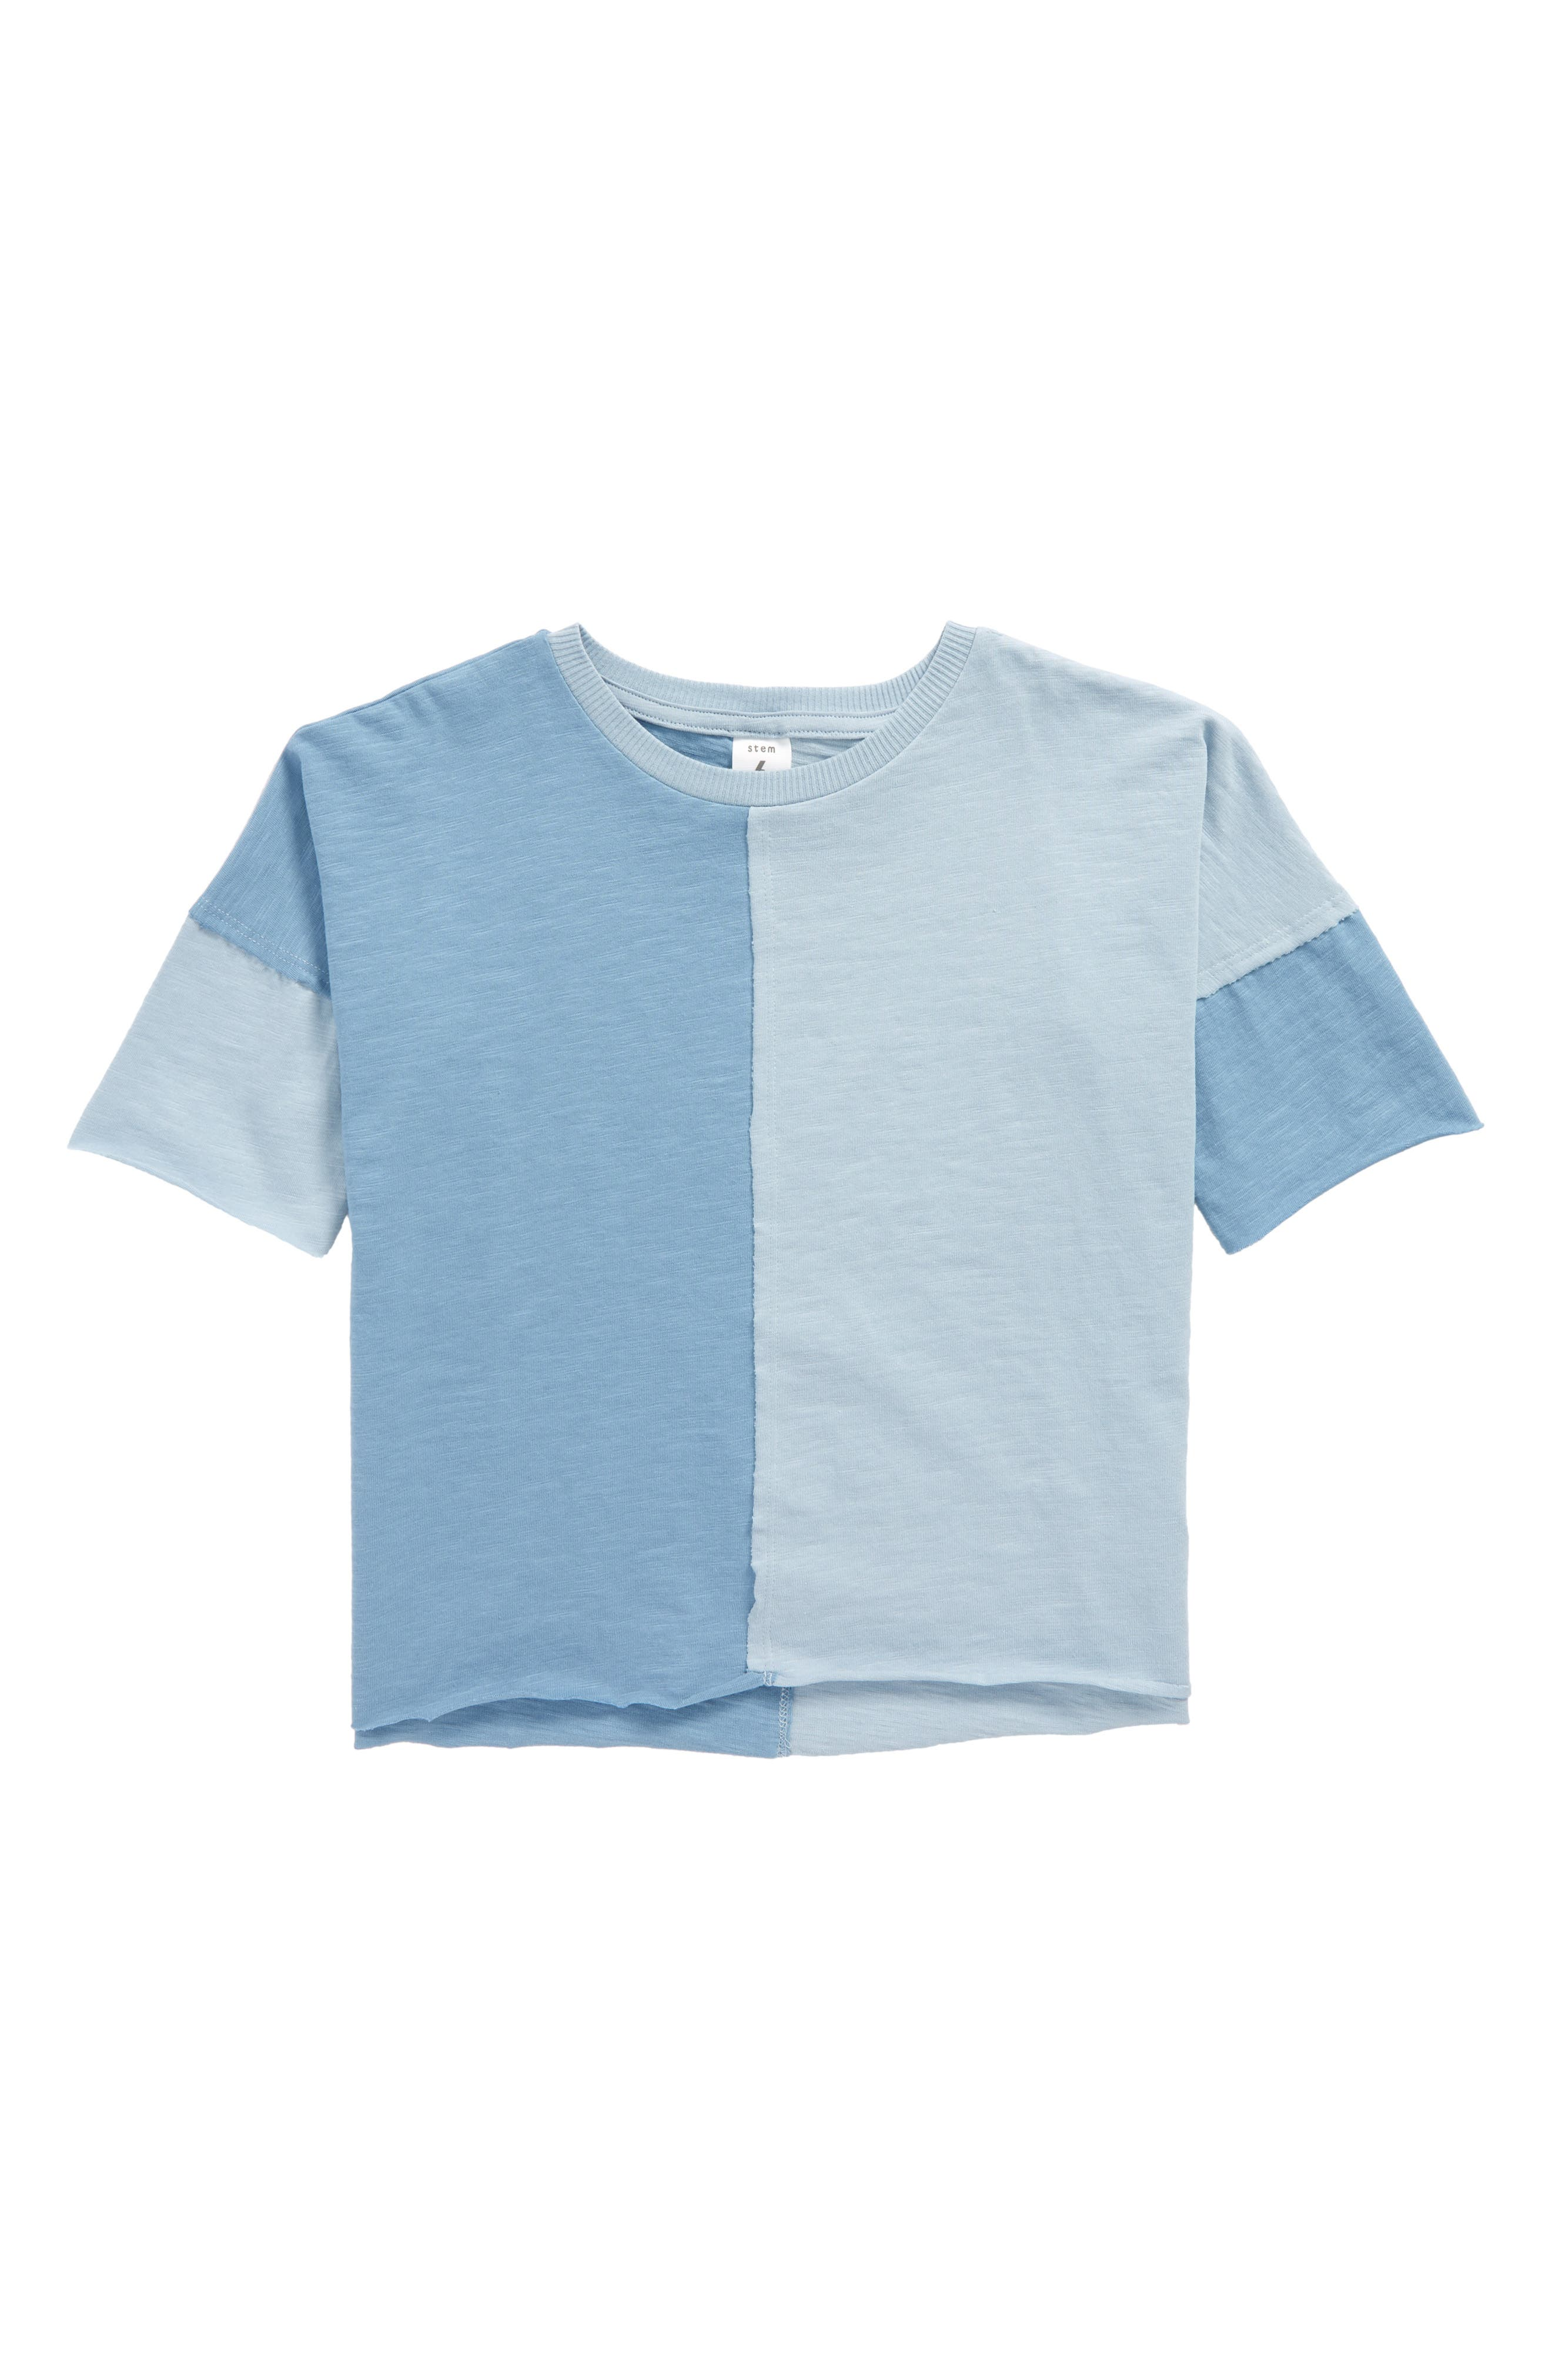 Two-Tone T-Shirt,                             Main thumbnail 1, color,